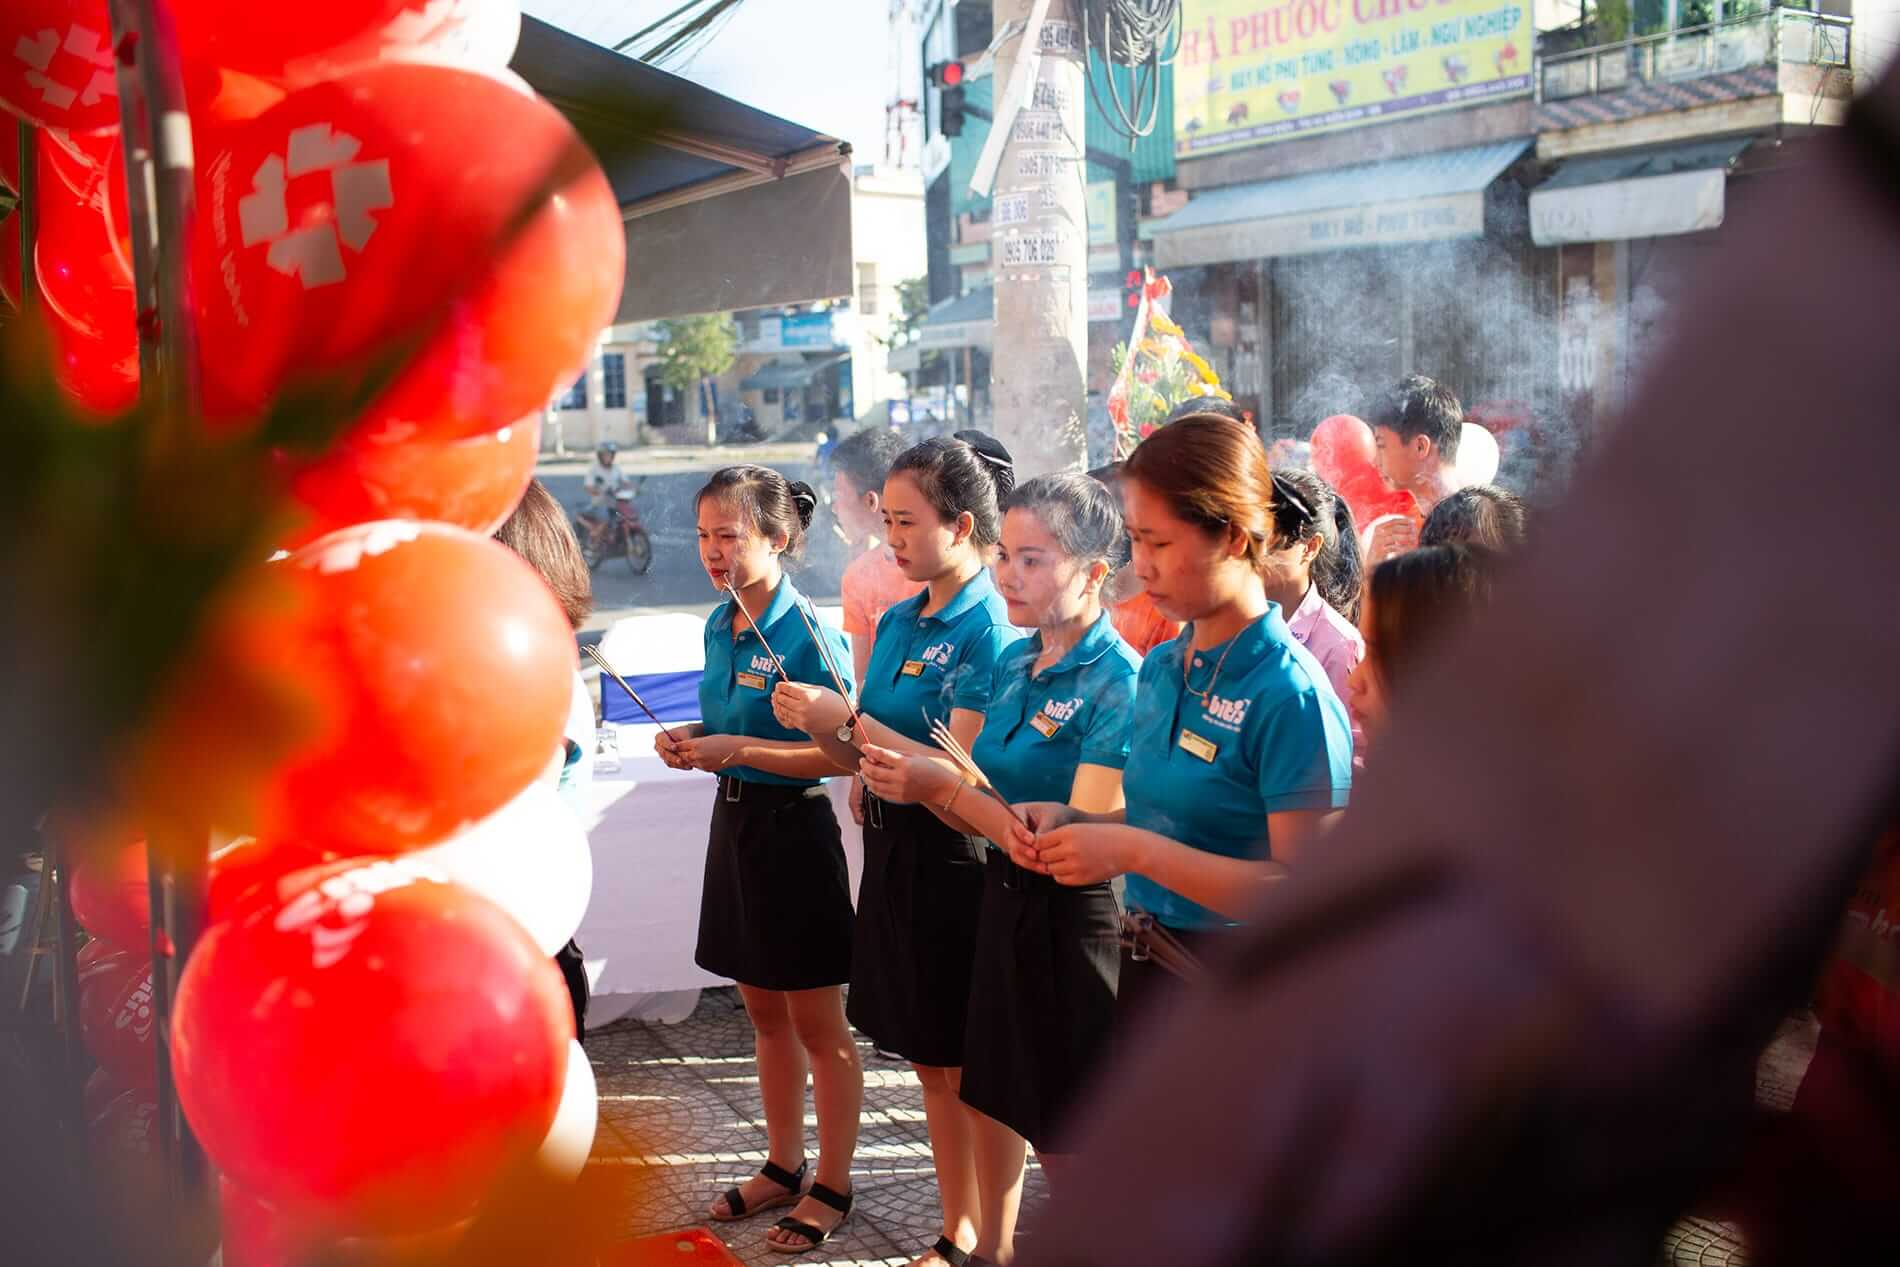 Shop workers light incense during the mid autumn festival